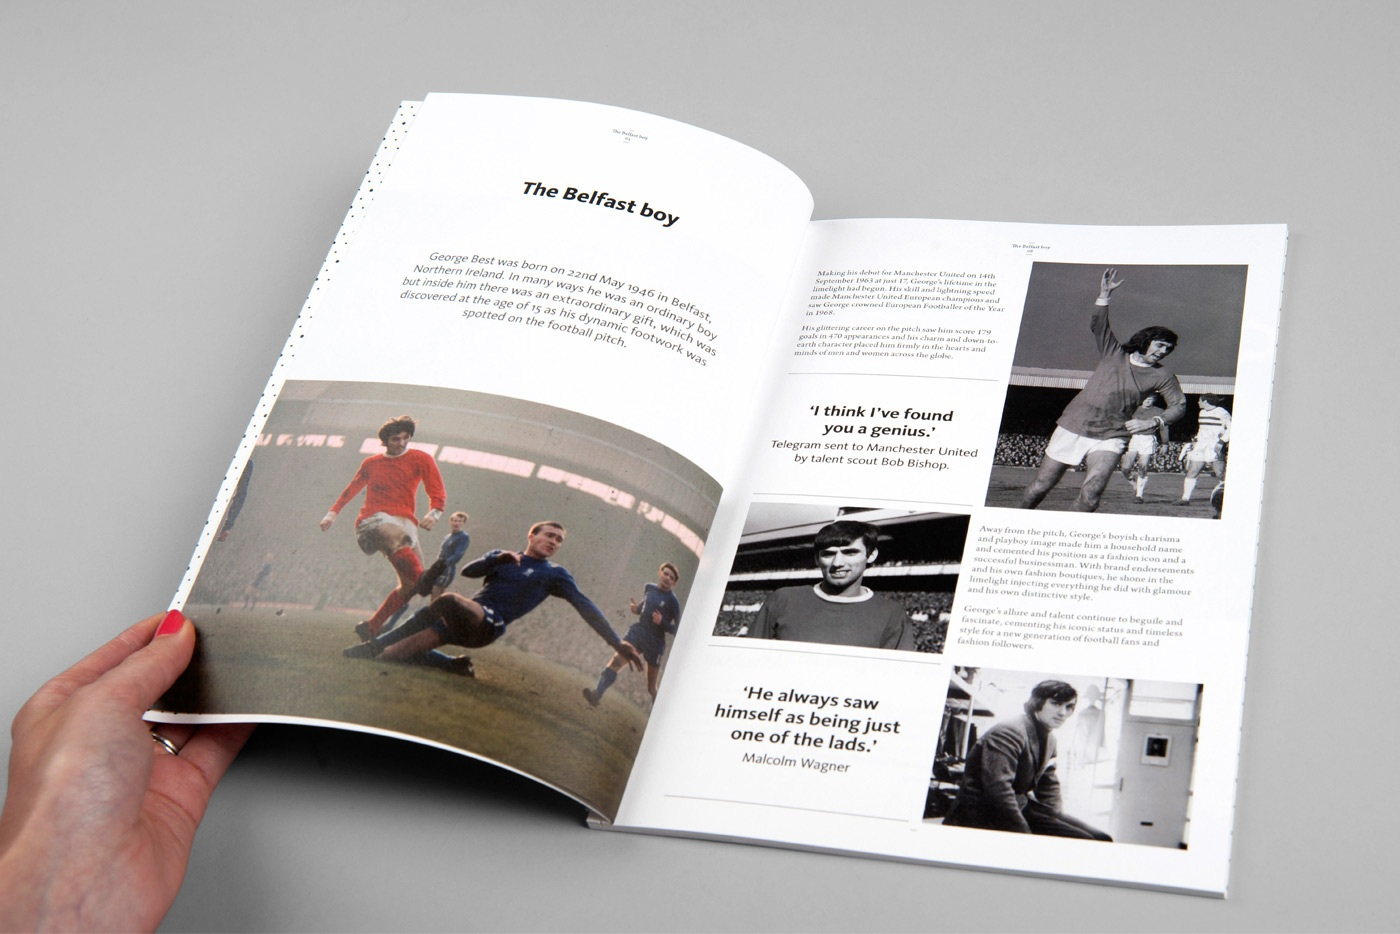 Sports web designers branding specialists george best 1